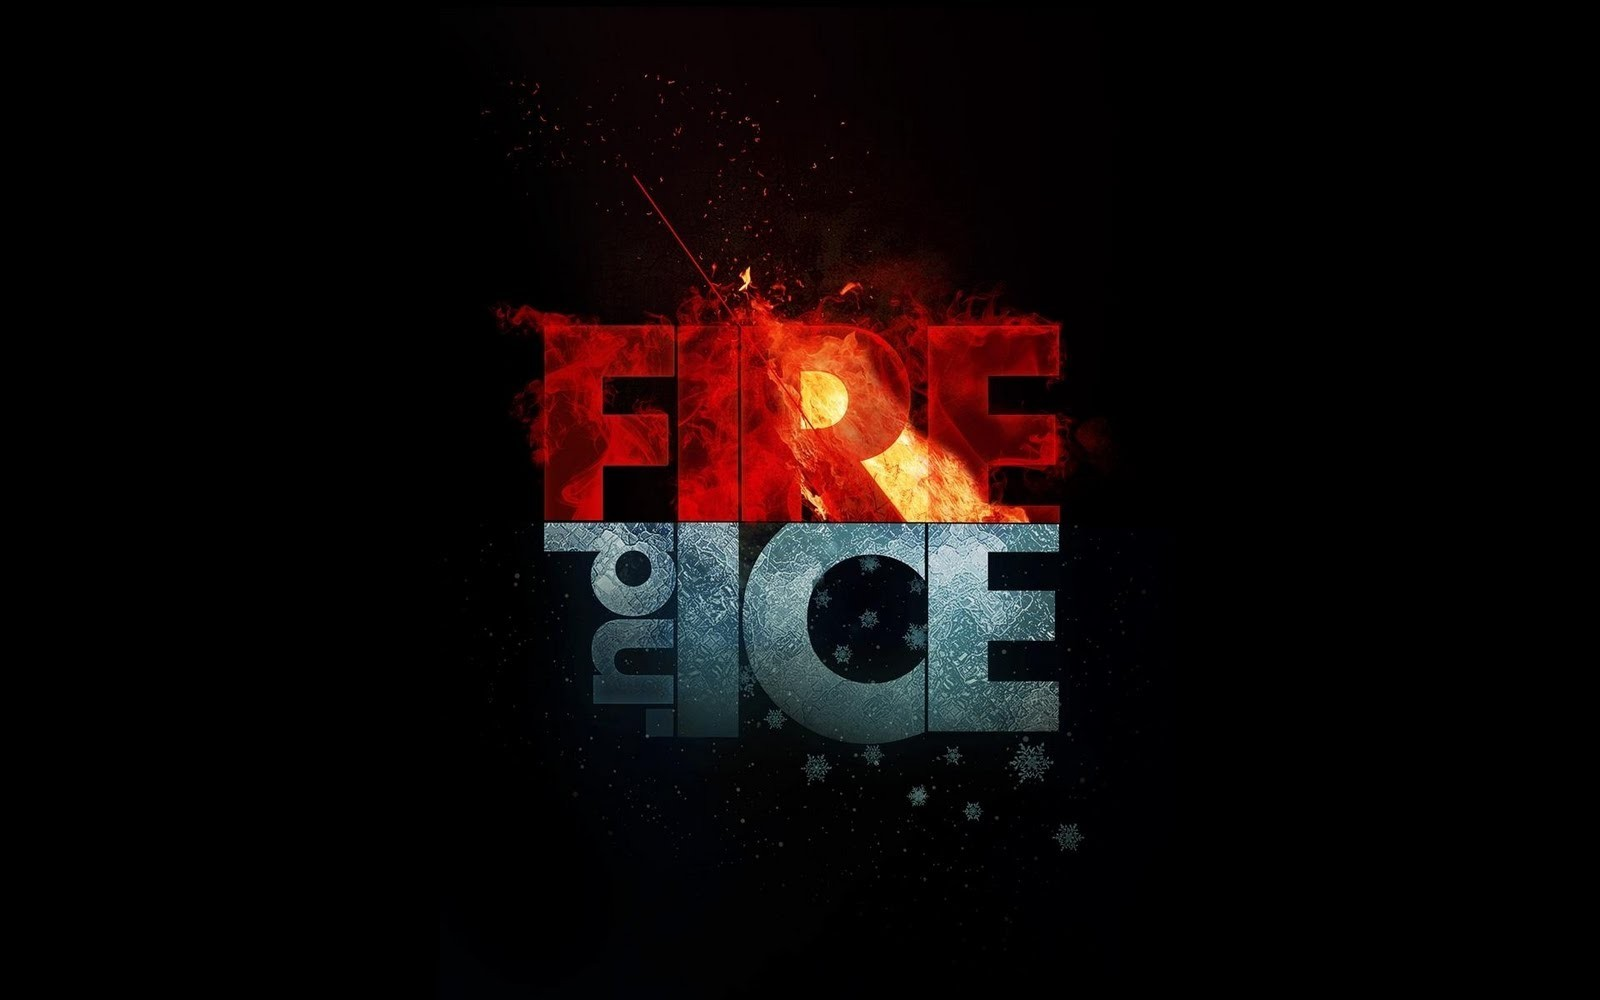 ice fire design Photoshop HD Wallpaper